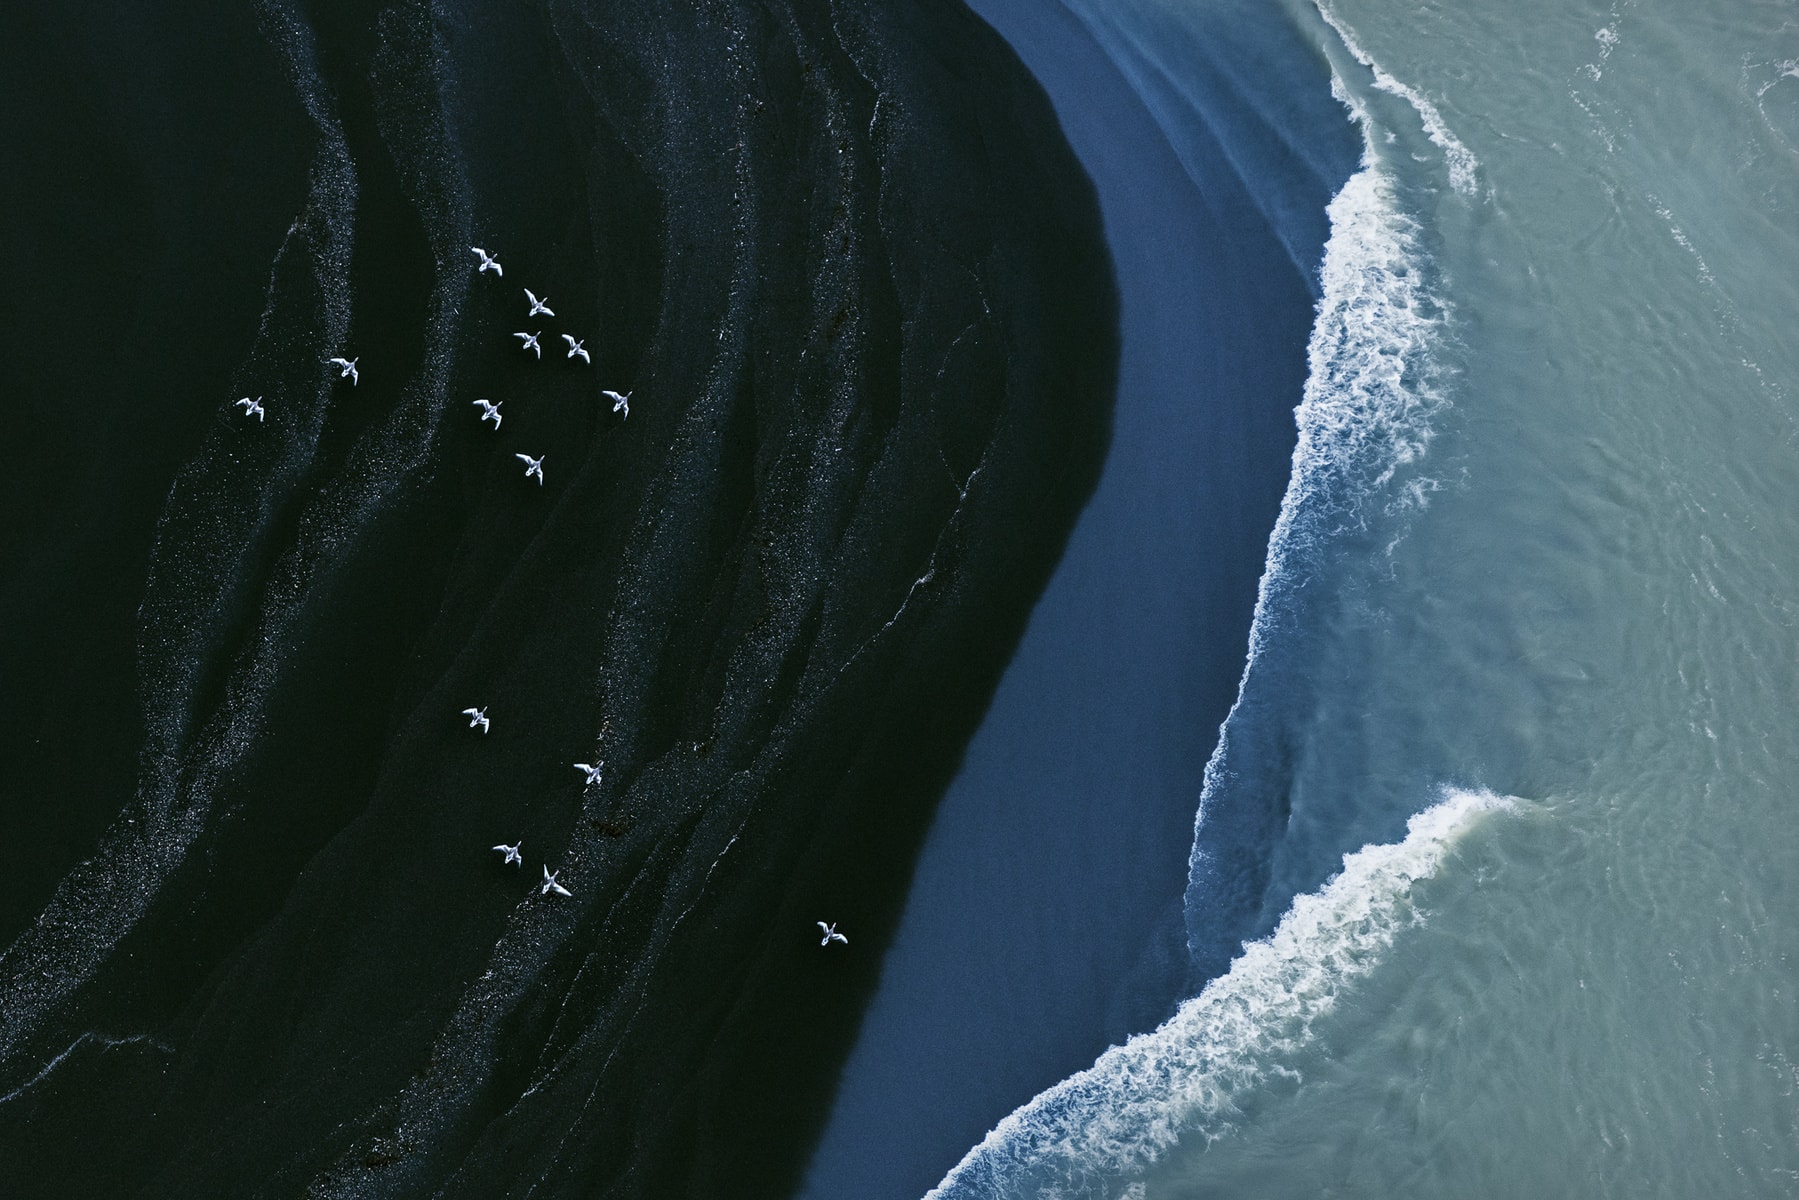 Iceland Aerial Abstract by Zack Seckler